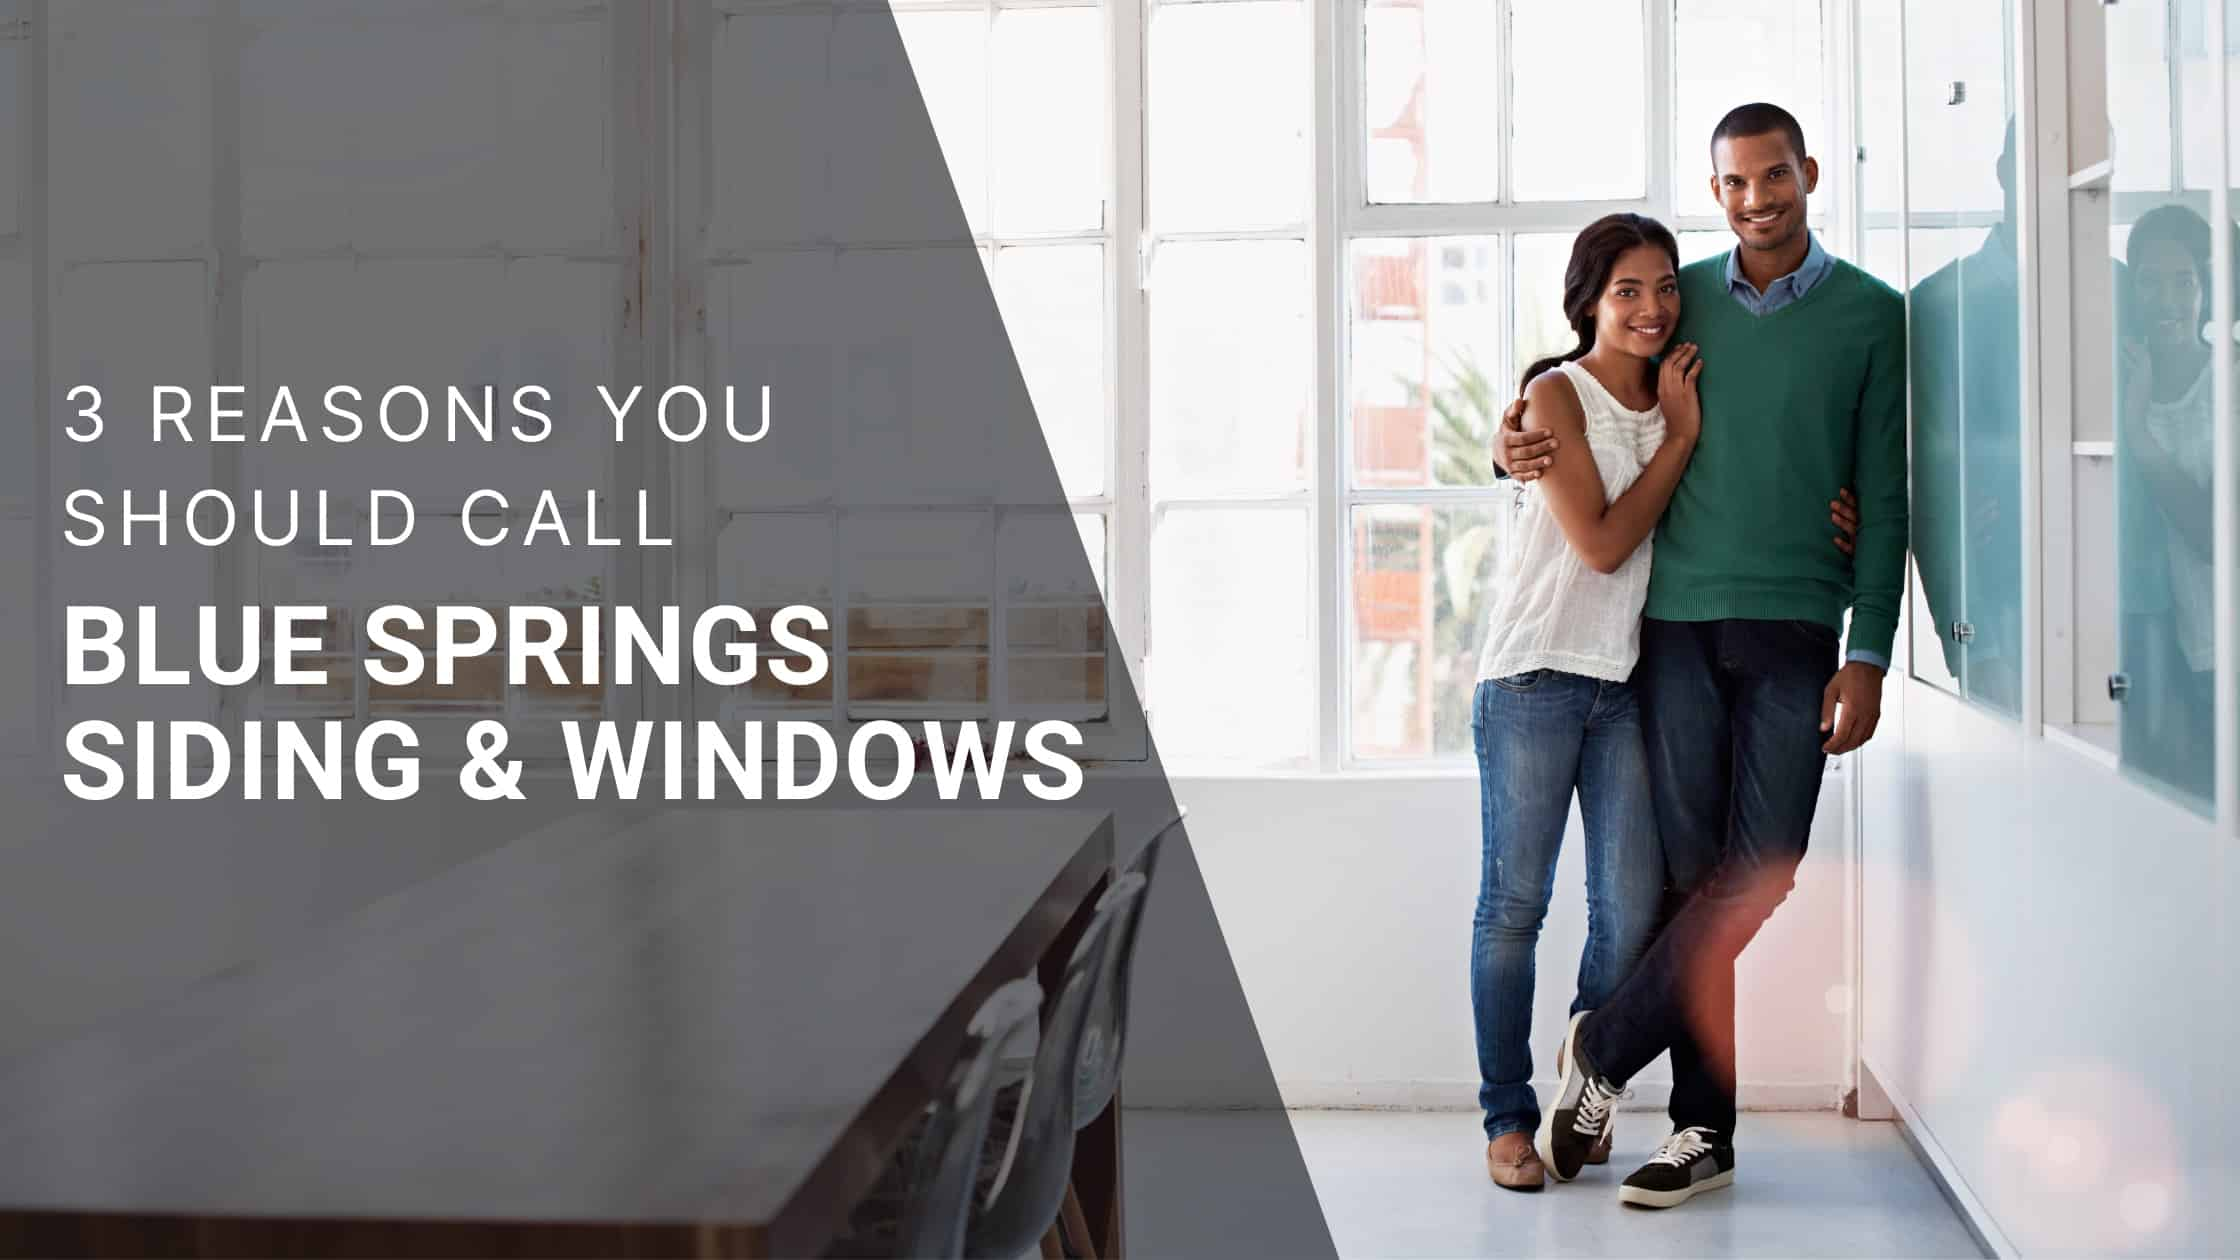 3 Reasons to Call Blue Springs Siding and Windows